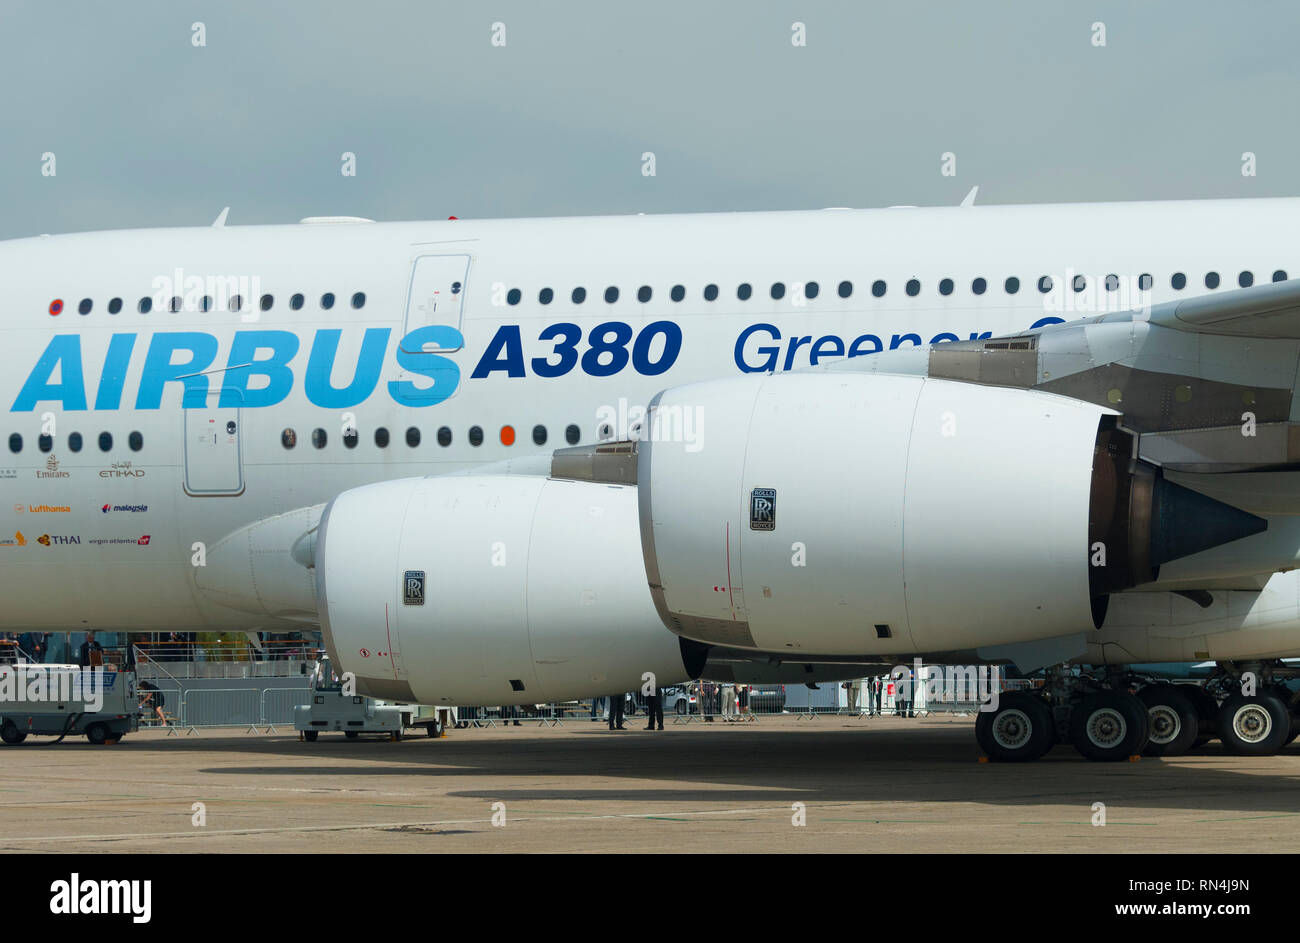 France, Seine Saint denis (93), Paris-Le Bourget airport, International Paris Air Show 2009, Airbus A380 with Rolls Royce Trent 900 motors - Stock Image